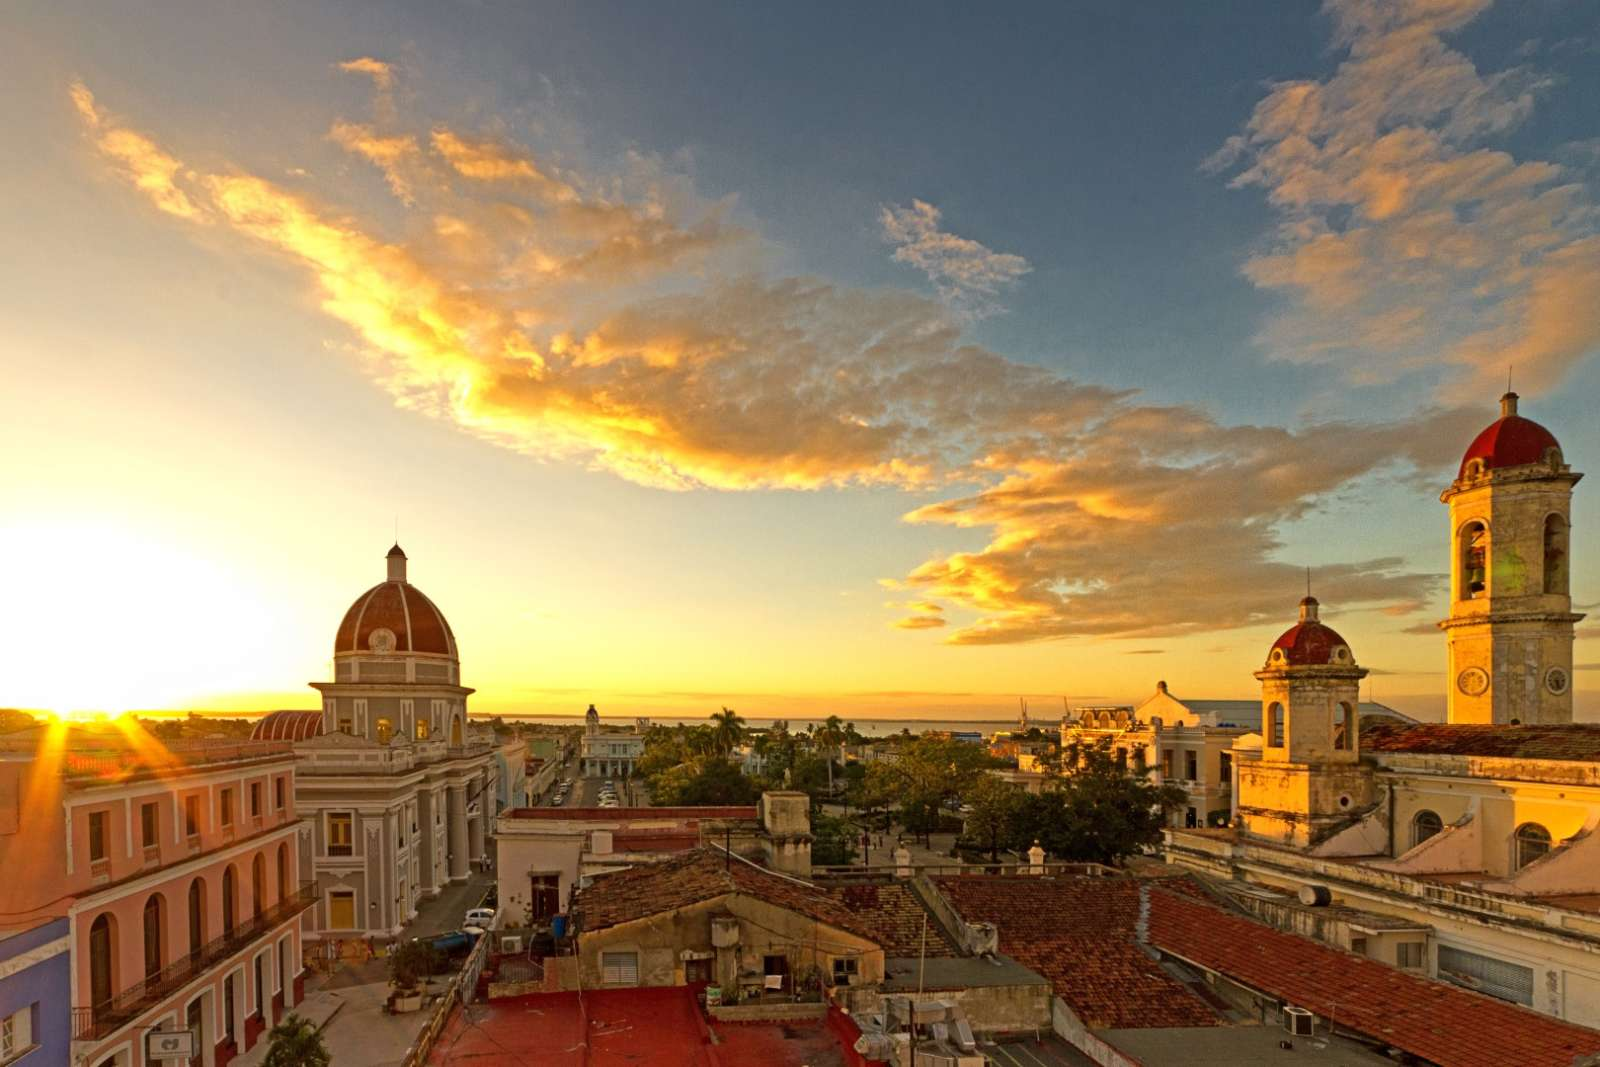 Sunset over Parque Central in Cienfuegos Cuba